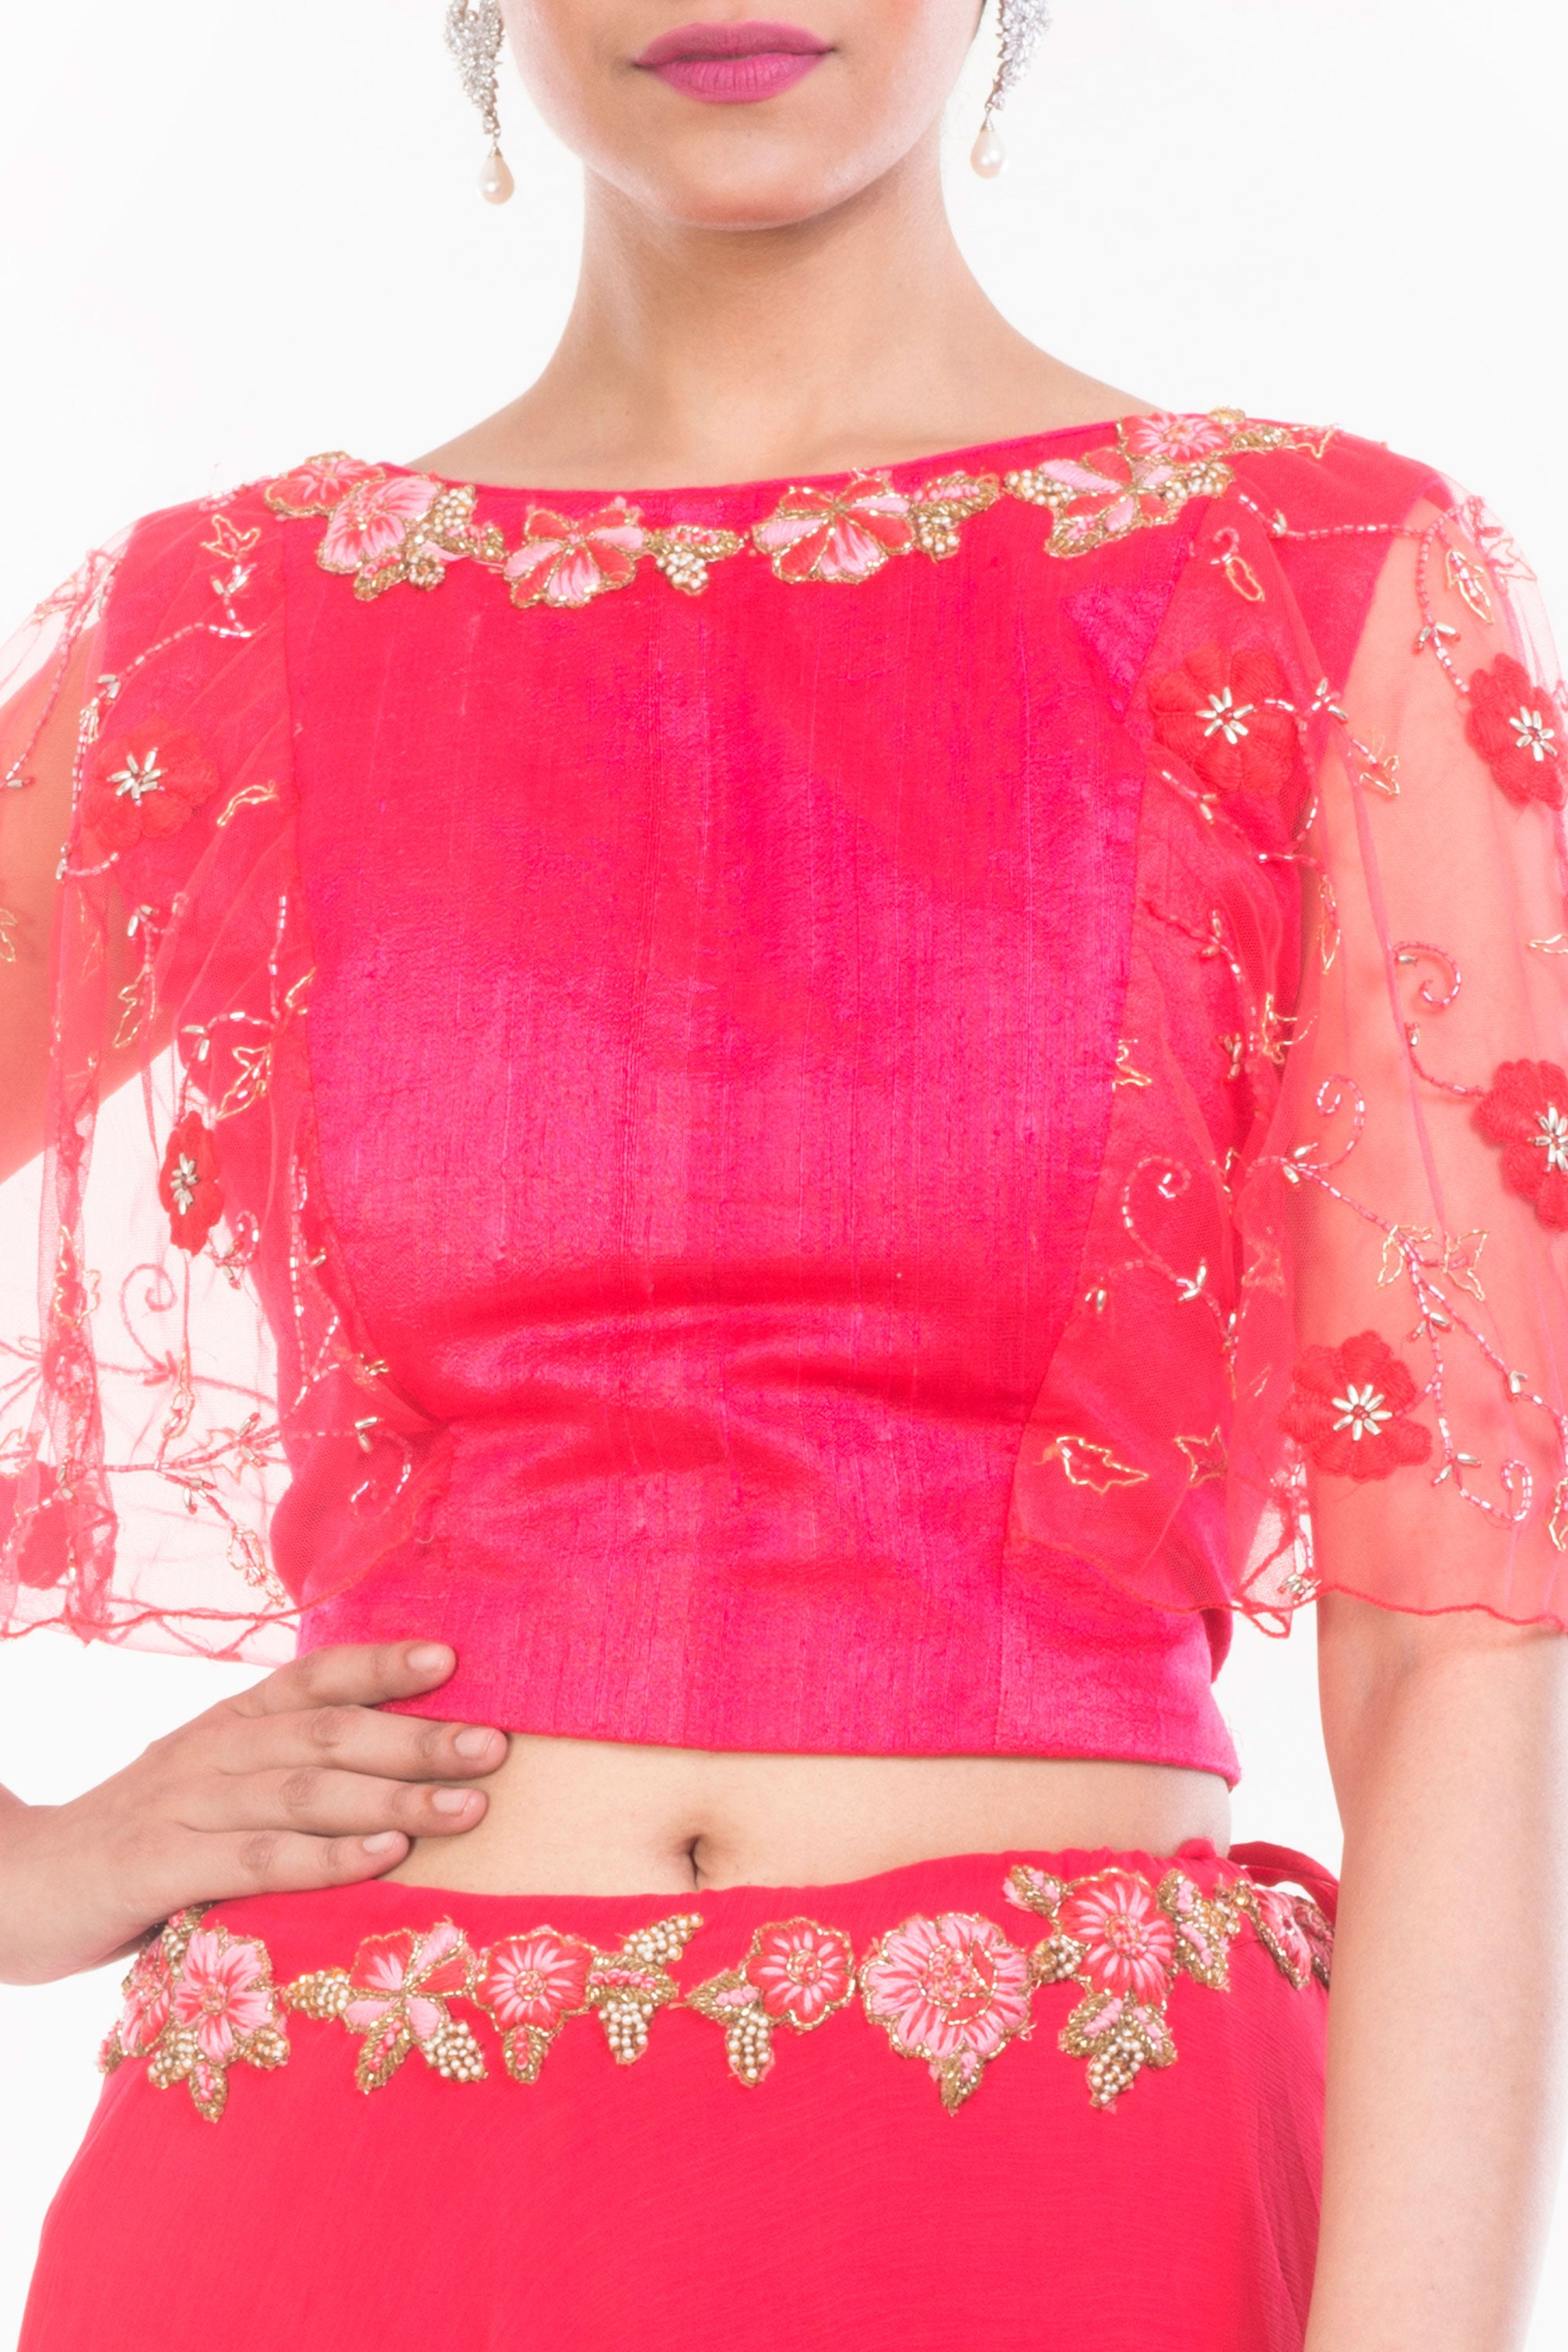 Tomato Red Crop Top Skirt Set Closeup